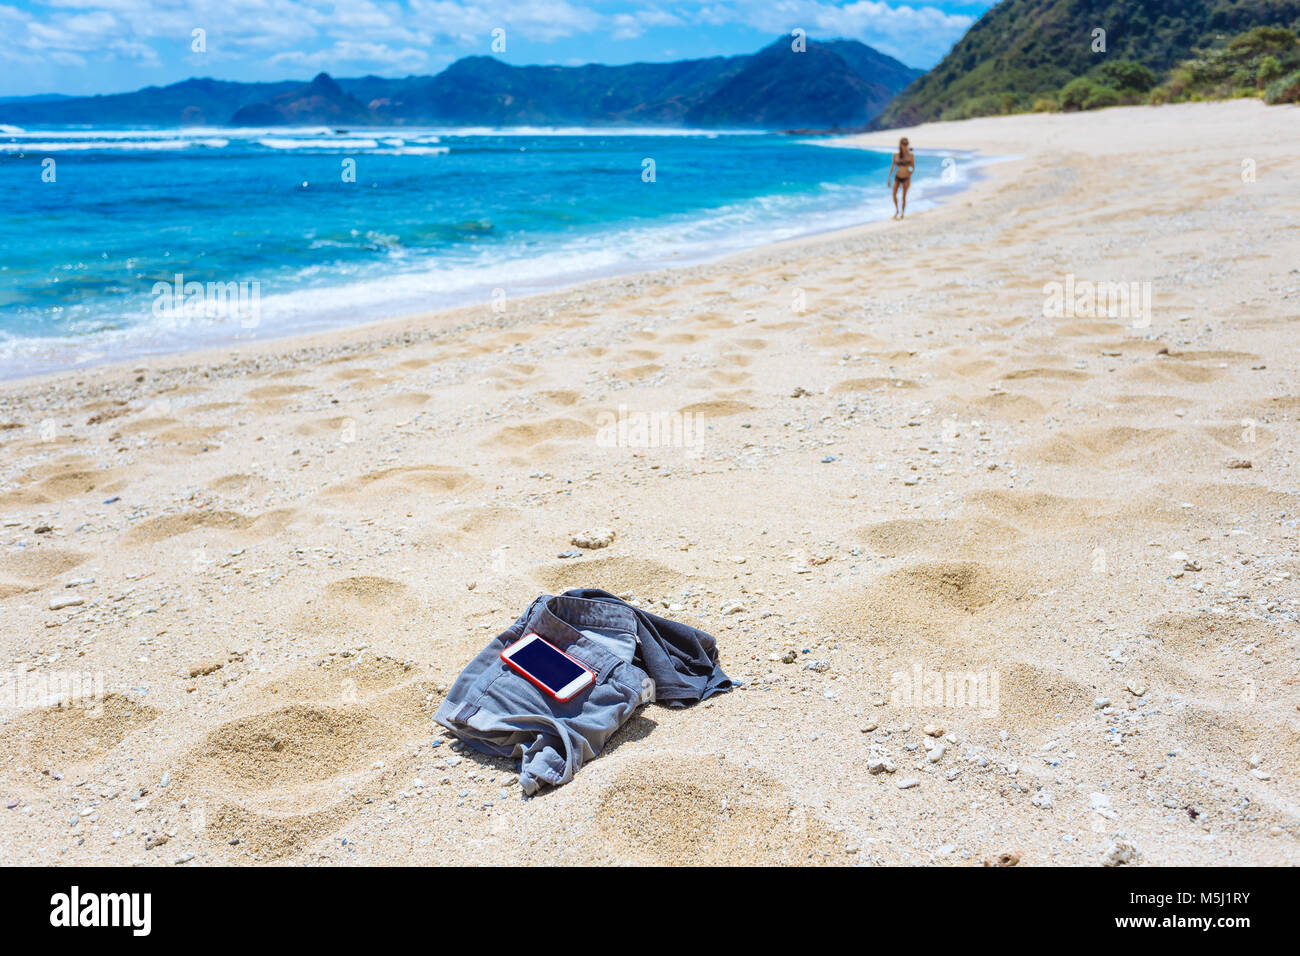 Indonesia, Lombok, woman on sandy beach - Stock Image